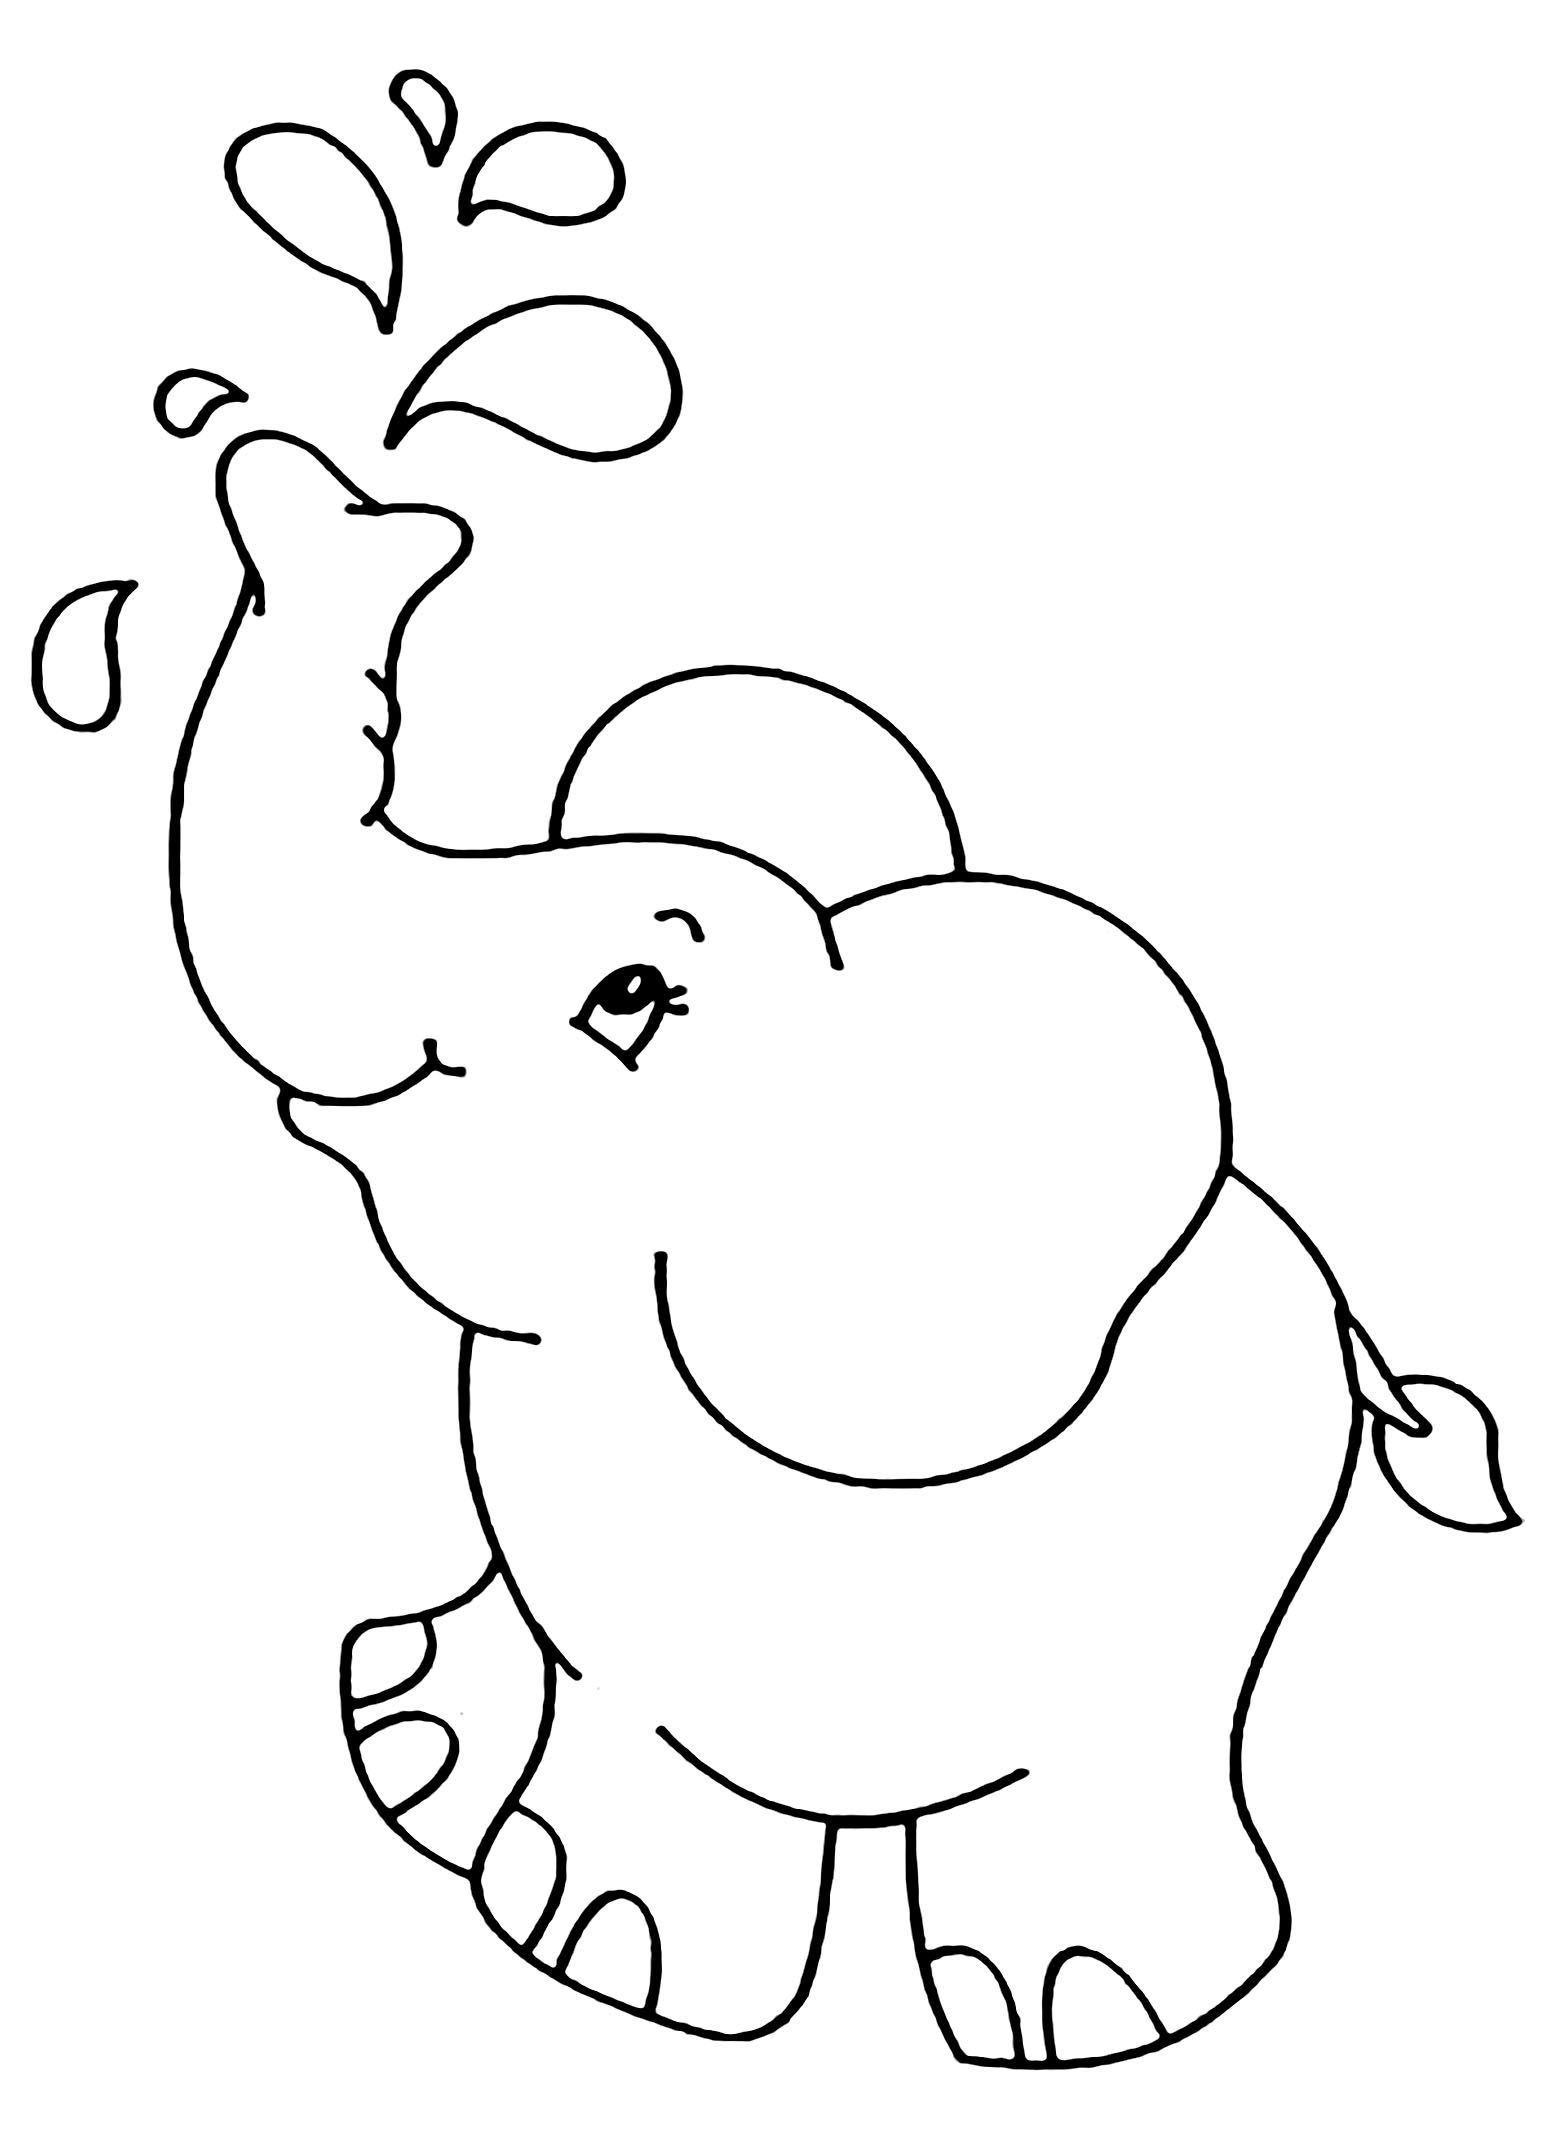 elephant colouring games elephants free to color for kids elephants kids coloring games elephant colouring